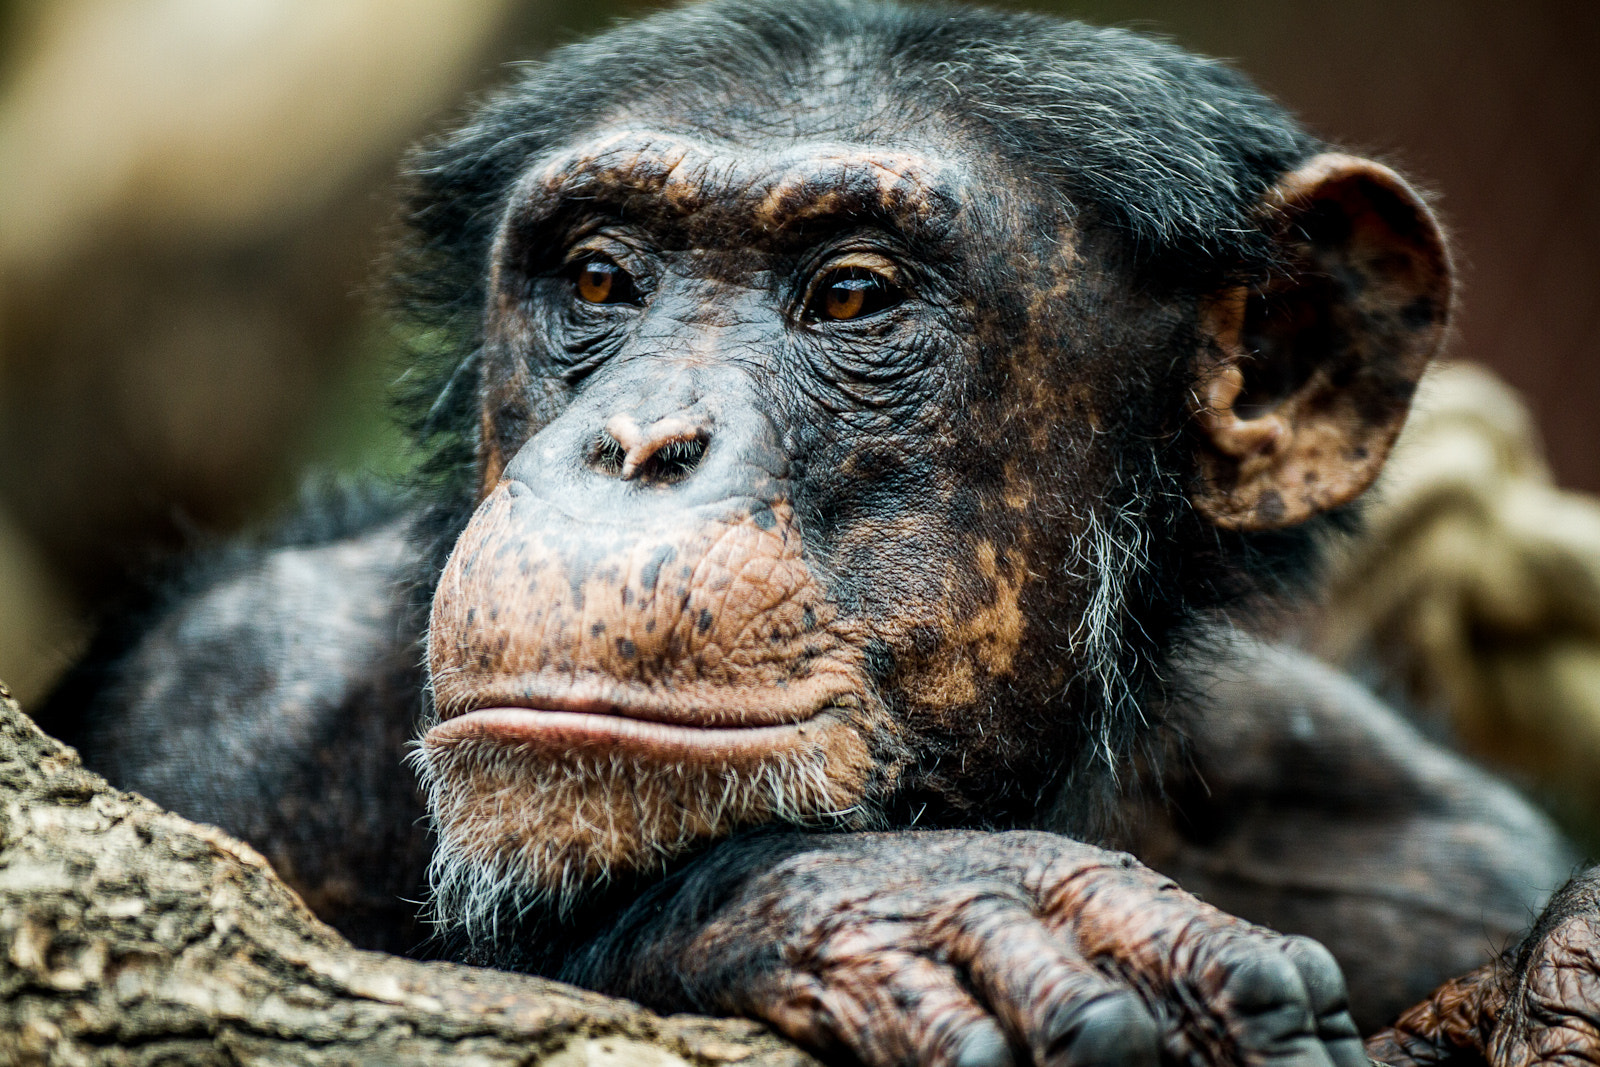 Photograph Chimpanzee by Marco Schmidt on 500px